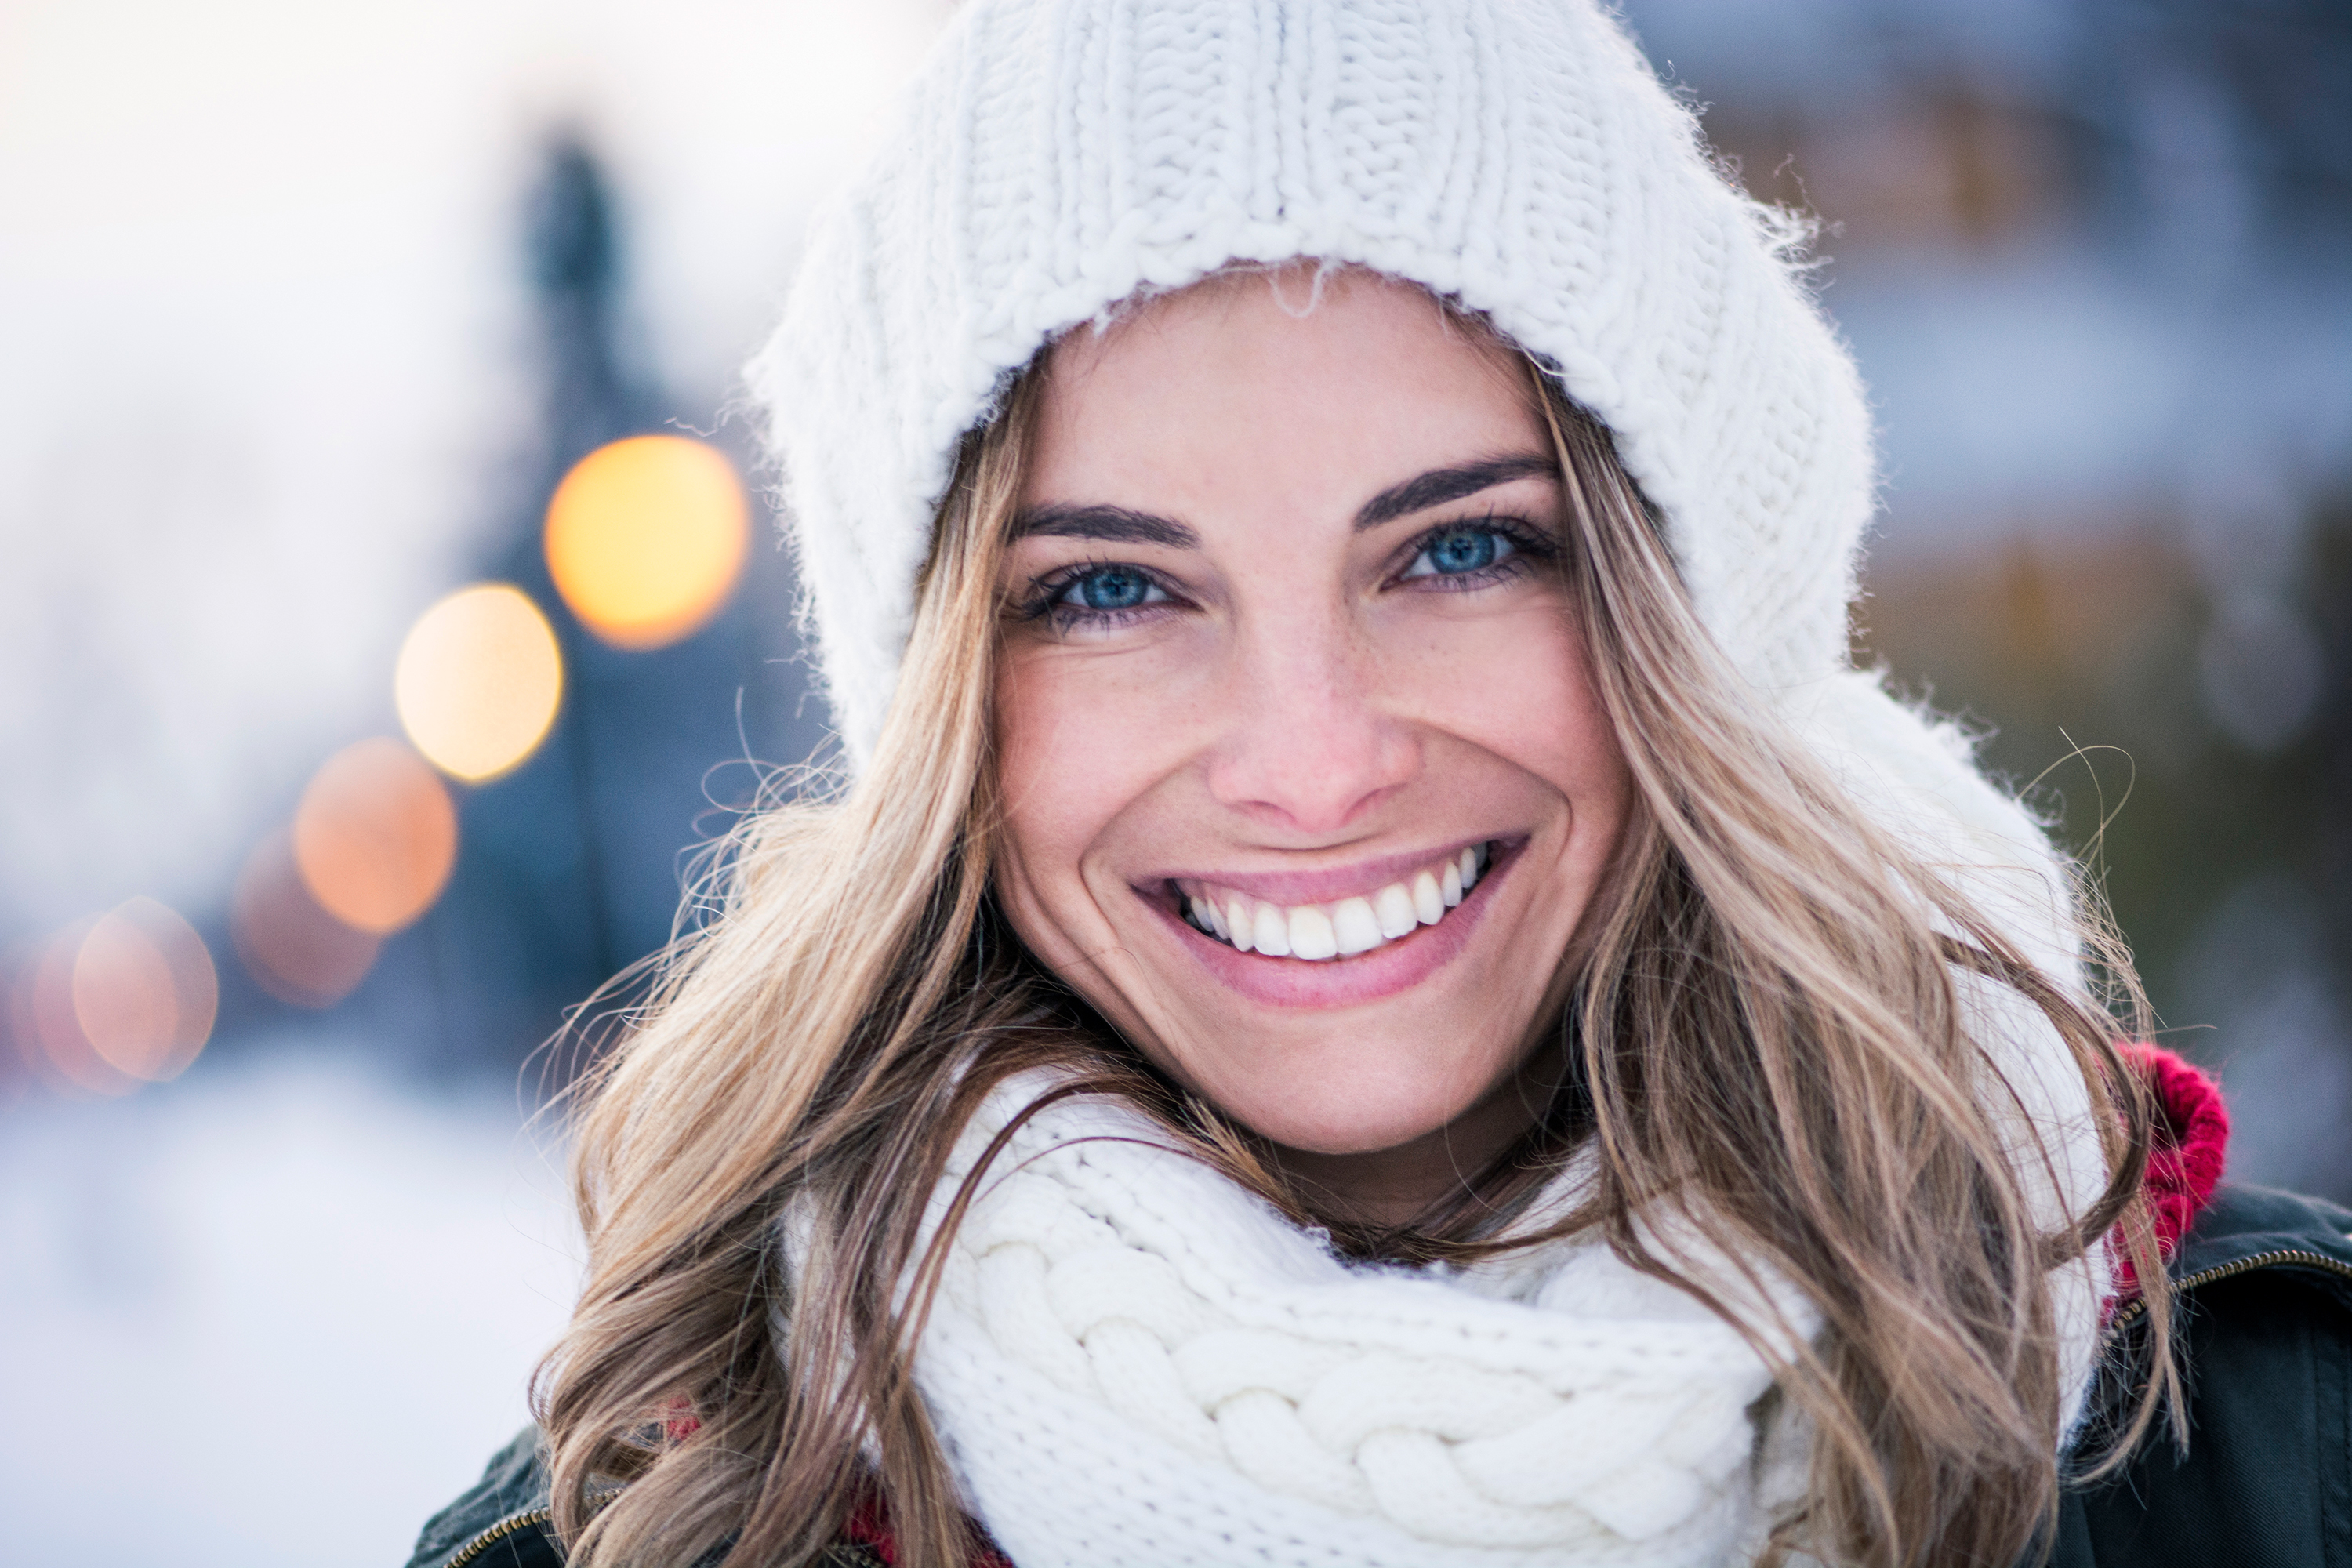 Woman Smiling and Standing in the Snow